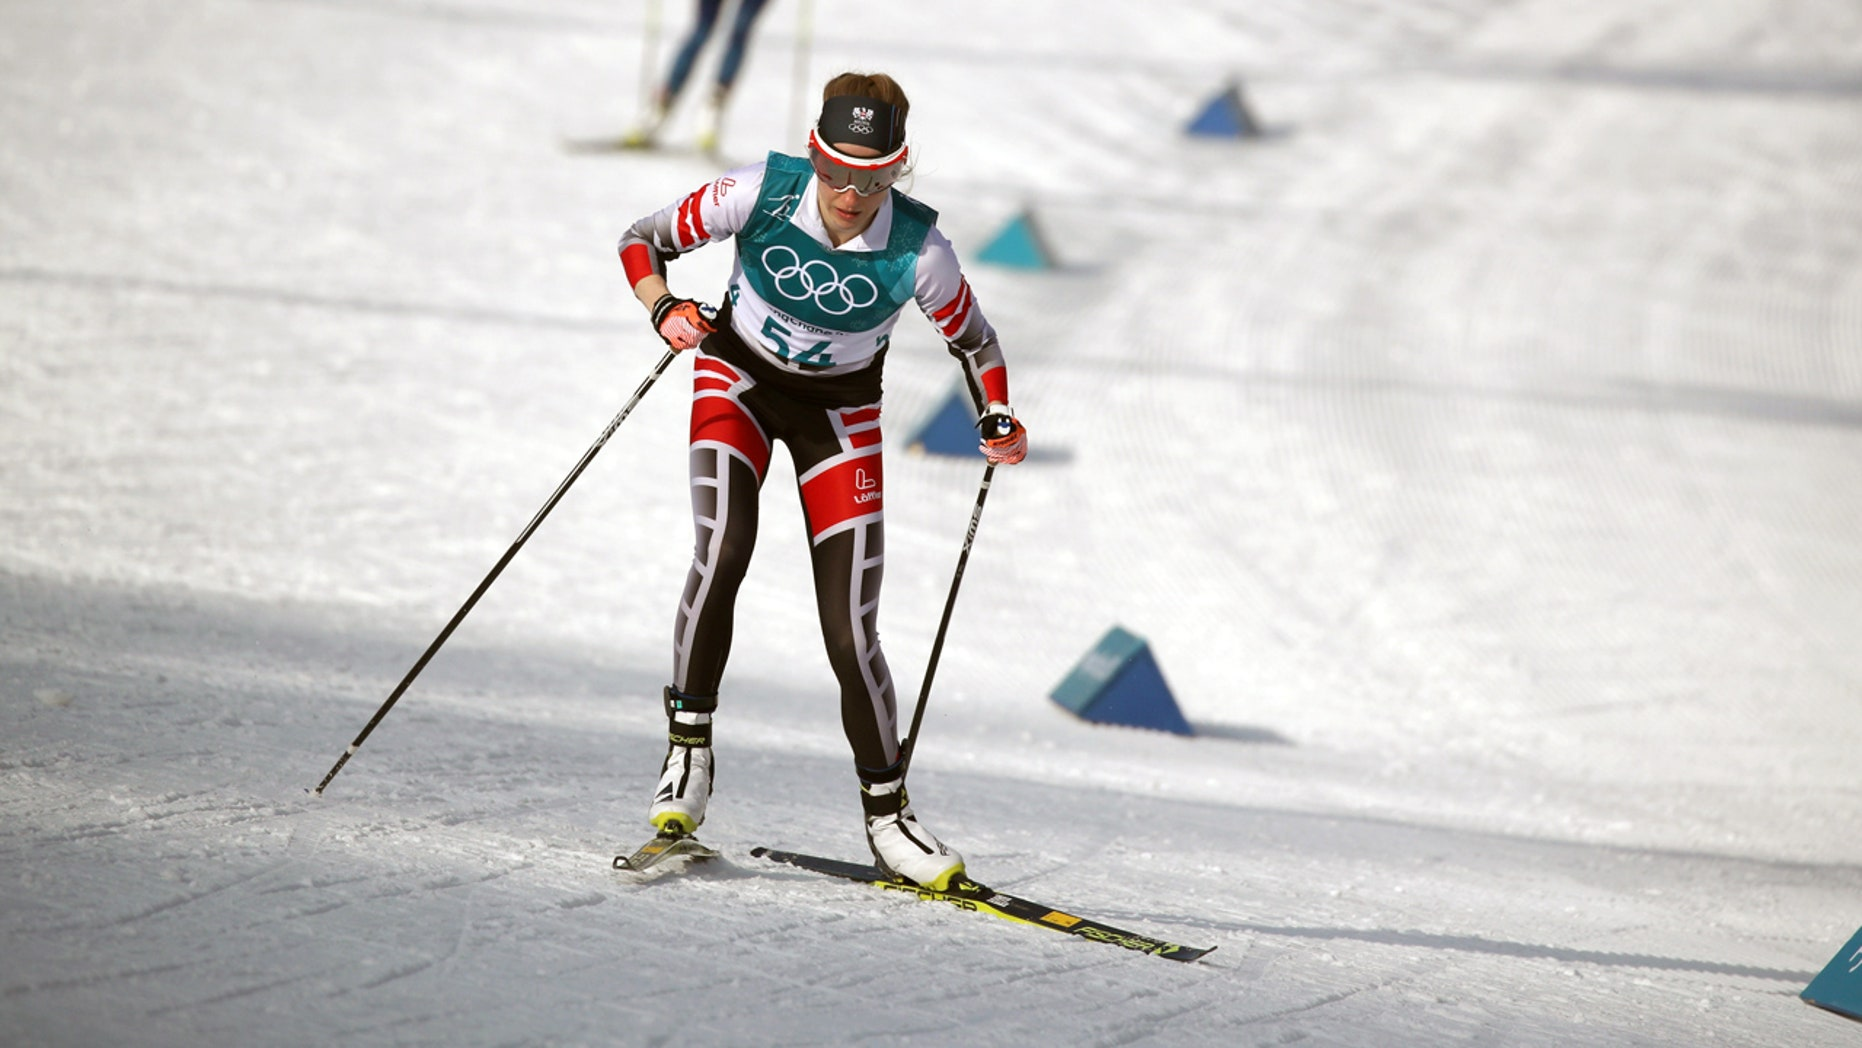 Austrian cross-country skier took a wrong turn costing her Olympic medal Austrian cross-country skier took a wrong turn costing her Olympic medal new picture